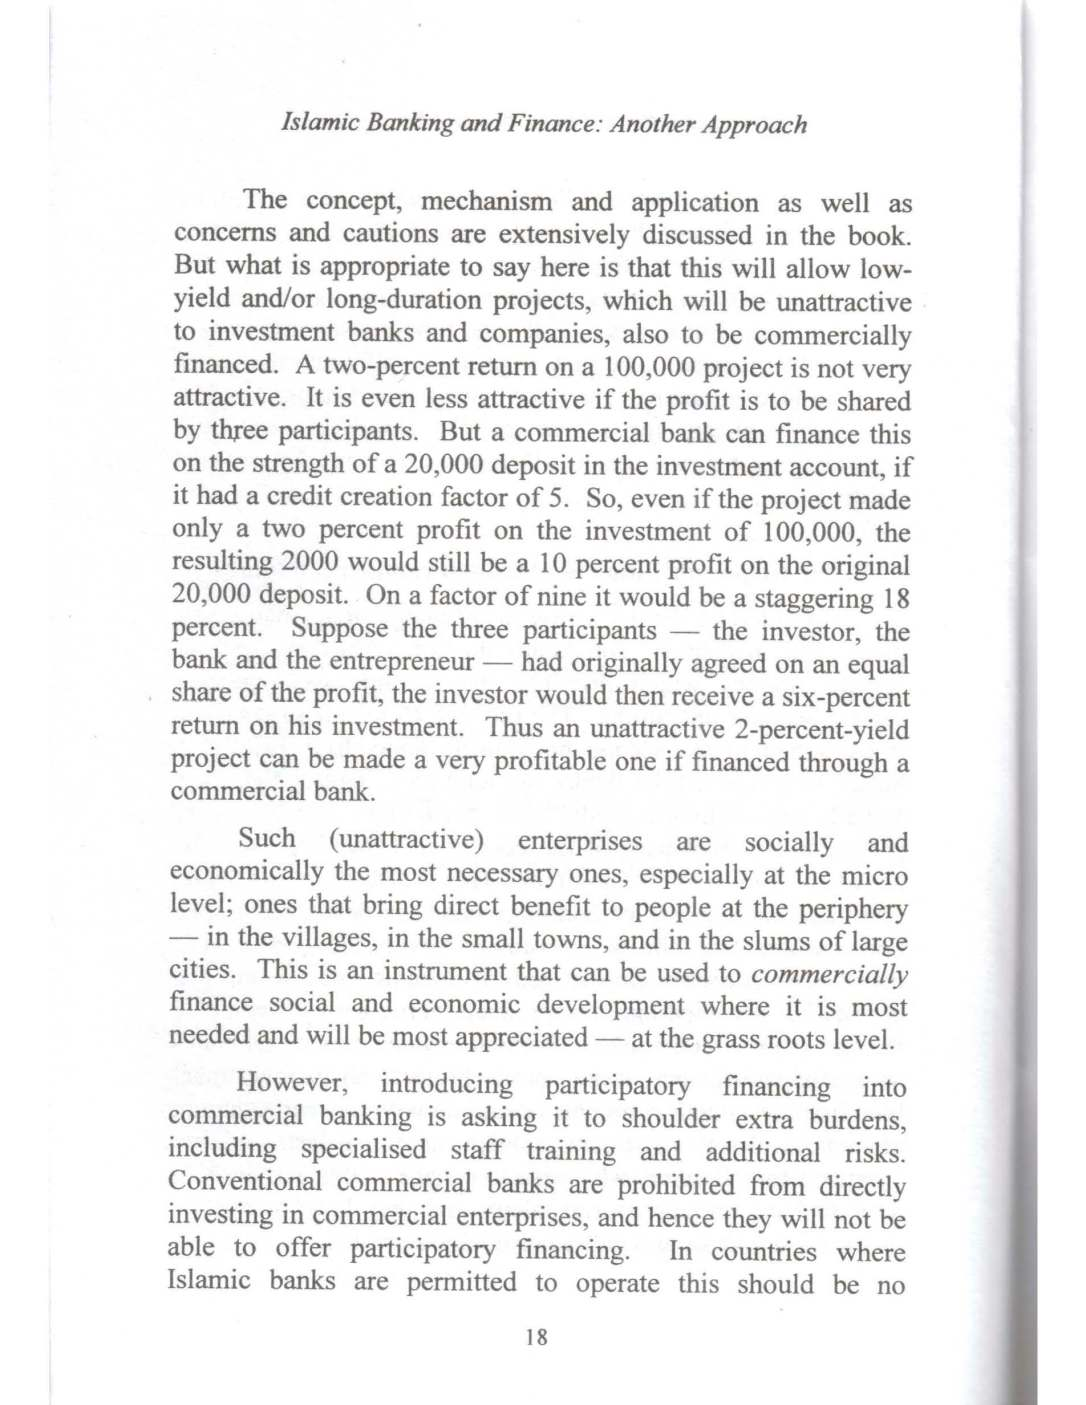 Islamic Banking and Finance - Another Approach_Page_19